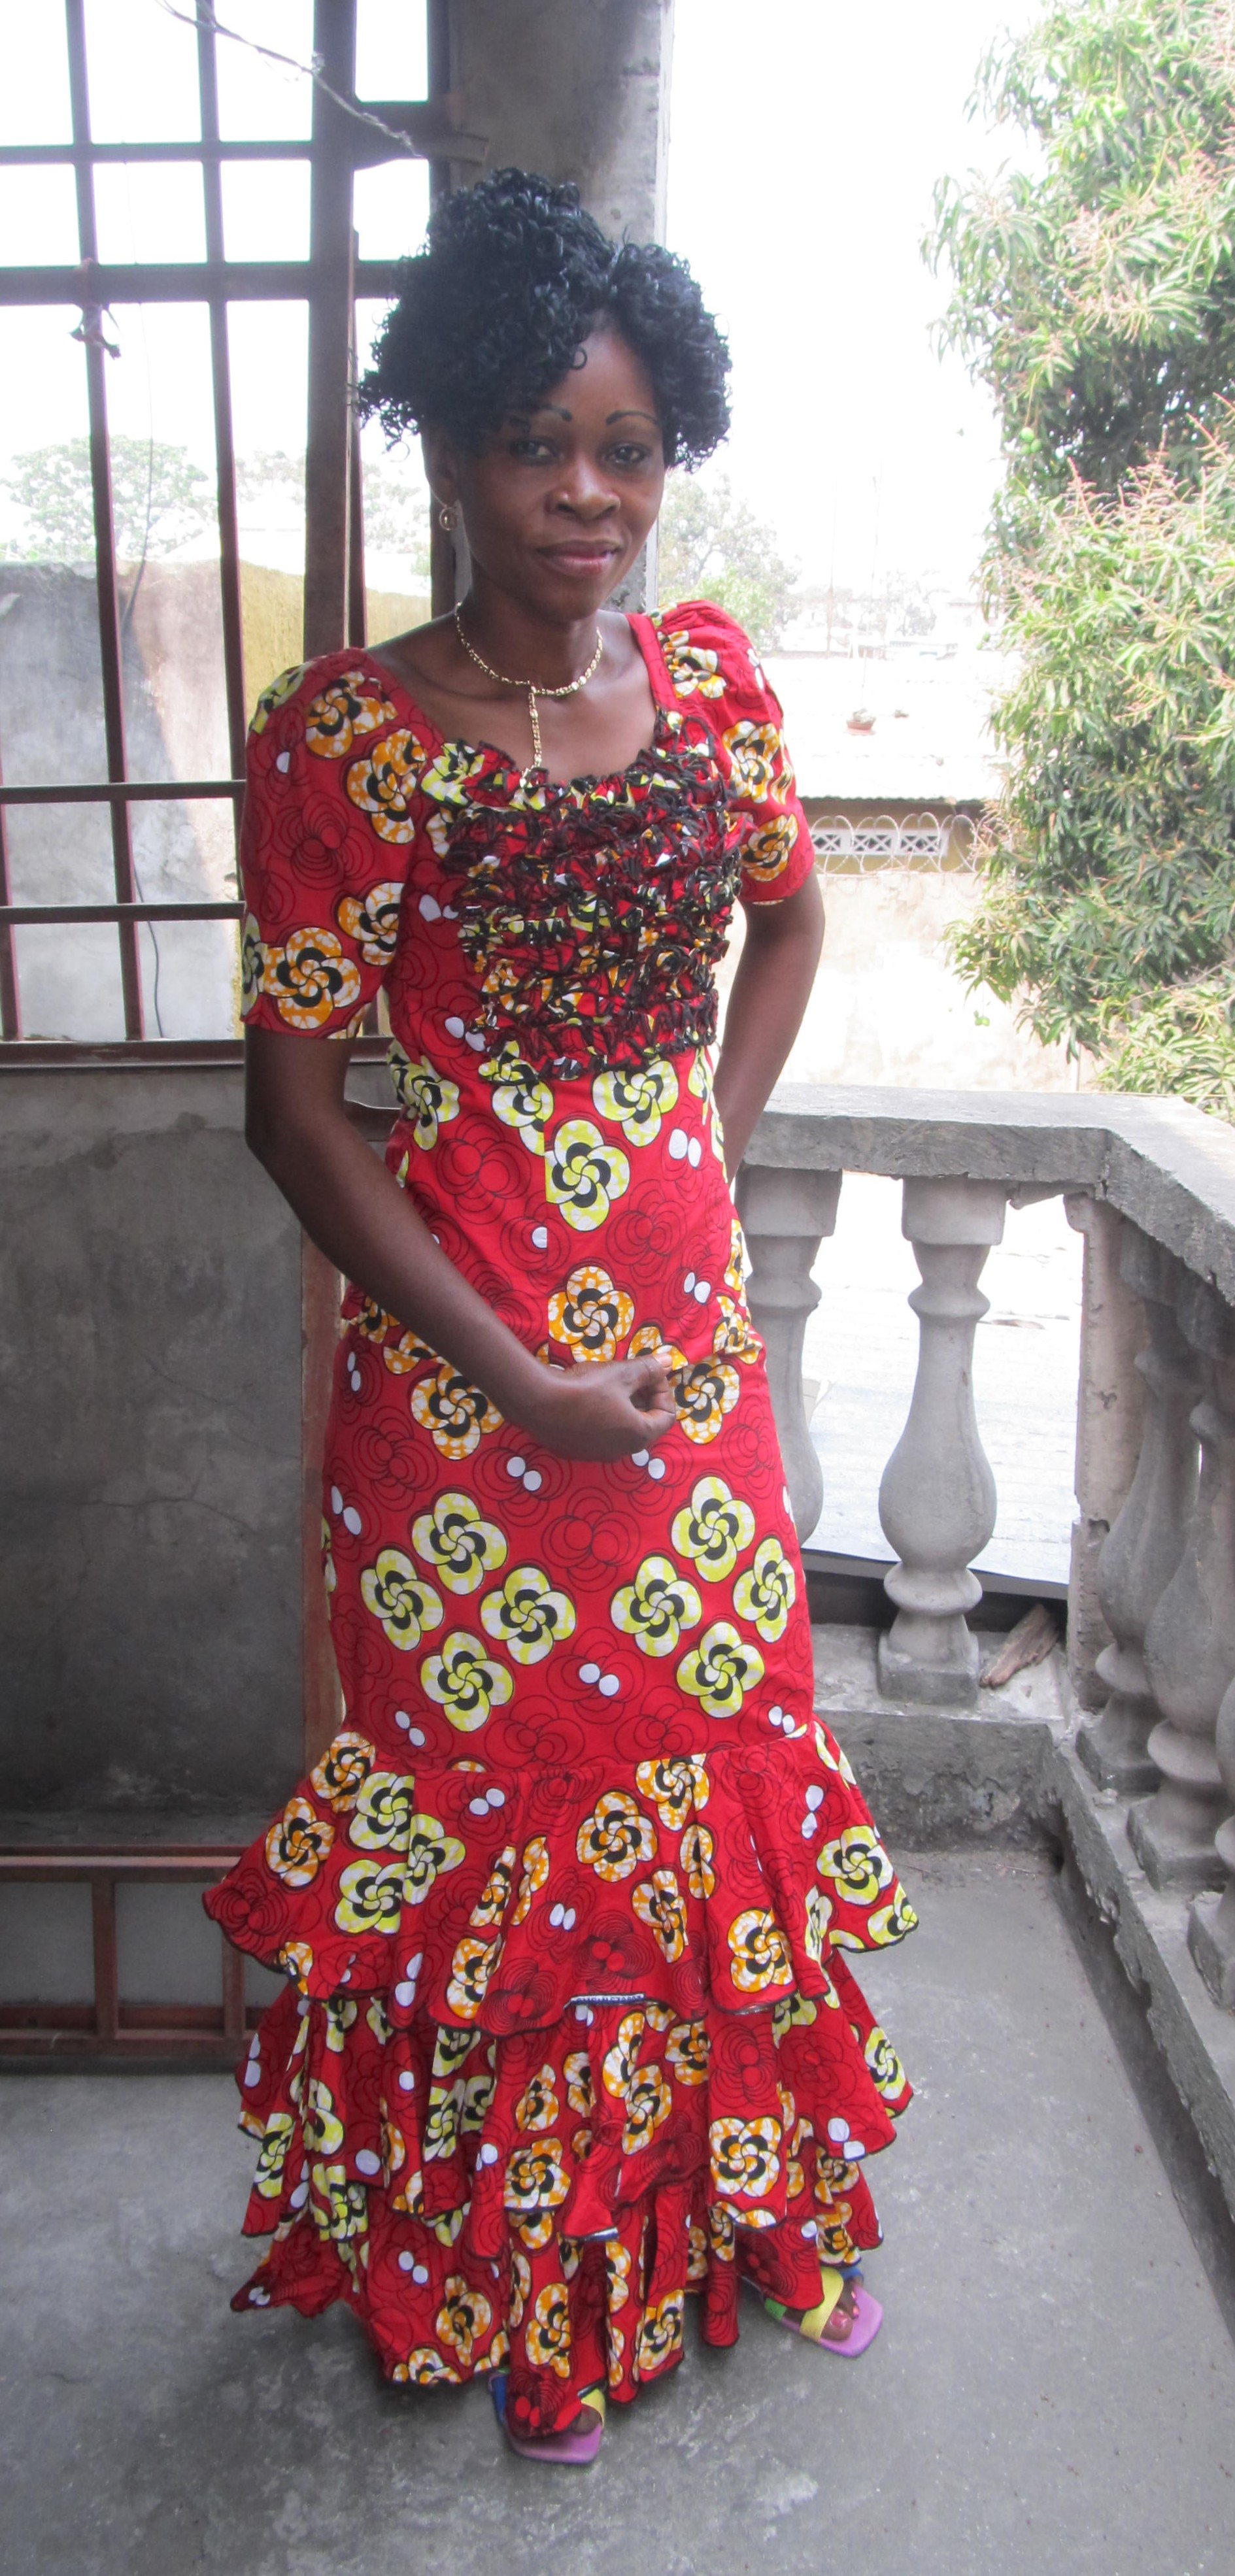 "Jeannette Boyata - ""My name is Boyata Jeannette. I am the wife of a soldier and we live in Camp Kabila. I am very happy to sew. When my husband was passing by FEBA he saw the poster which said they were seeking people who wanted to learn to sew. He talked with me about it, saying, ""You like to sew; I like for you to do it. You are the mother of three children (whom we must educate)."" It was my husband who urged me to come. I enrolled in 2013 and now I sew very well. When someone sees how I sew, he asks where I learned and I say, ""At Mme Monique's."" Also I have brought many young girls to this sewing school.Since the salary of a soldier is not much, I thank God that I can now sew and contribute to our household. I have a sewing machine at my house and I can earn $20 and pay the school fees for my children. The oldest is in the fifth year of secondary, the second is in primary six, and the youngest in primary four. I don't have enough money to open an atelier (shop) for myself. But in spite of that, now we do not lack food. For example, if someone comes with a broken zipper, I can repair it, or if the pants are too big, I can adjust them. That way we can eat. I thank the Lord for this machine. My husband came the day of graduation and saw me in my beautiful dress. He was very happy when he saw the machine (my graduation present from Woman Cradle of Abundance, Inc.). He said, ""Having a machine was a dream and now the dream has come true!"" A machine is something extraordinary in the house. I appreciate Mme Monique very much and I am happy that she invited me here to speak about my life. Many thanks to Mme Monique because she has done so much for us."""